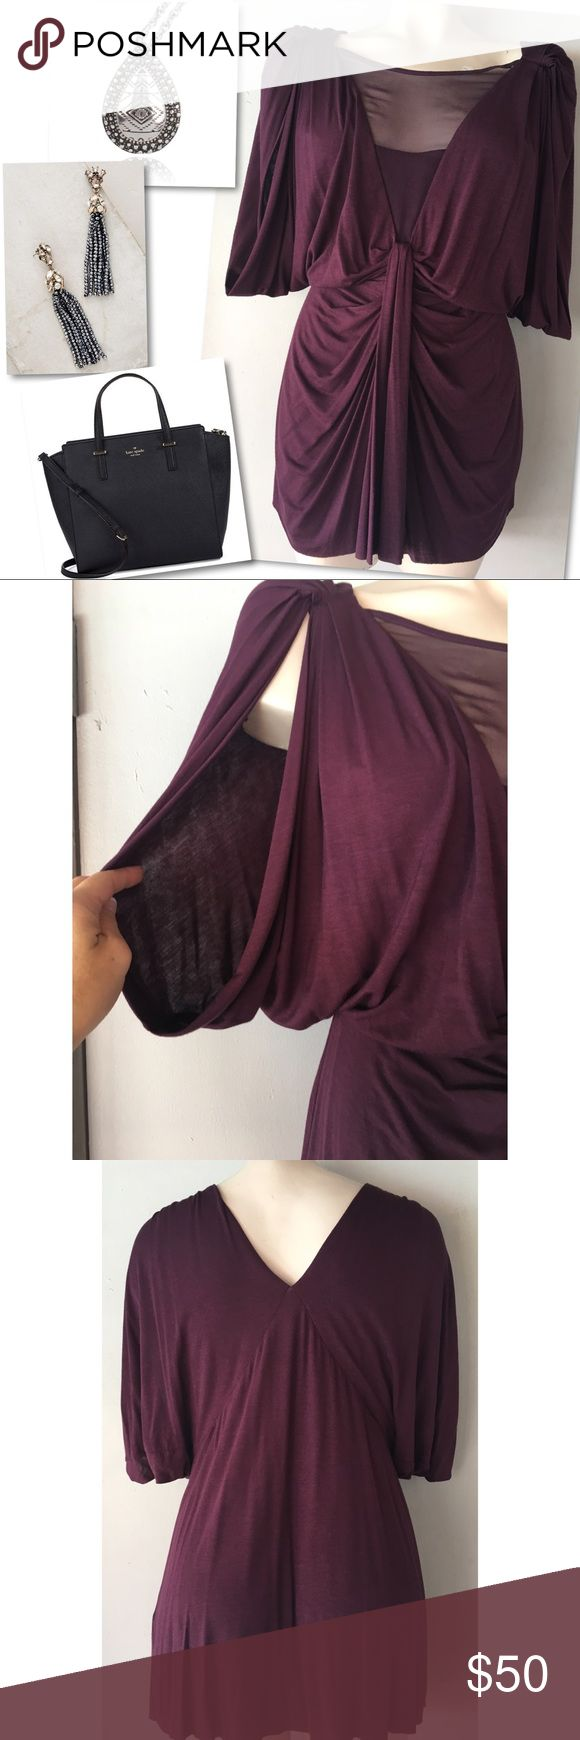 """ANTHROPOLOGIE BAILEY 44 PURPLE DRAPED TOP BLOUSE L ANTHROPOLOGIE BAILEY 44 PURPLE DRAPED TOP BLOUSE L - 38-44"""" BUST 39"""" LENGTH - SELF: 94% RAYON 6% SPANDEX, CONTRAST: 100% SILK Bailey 44 Tops Blouses"""